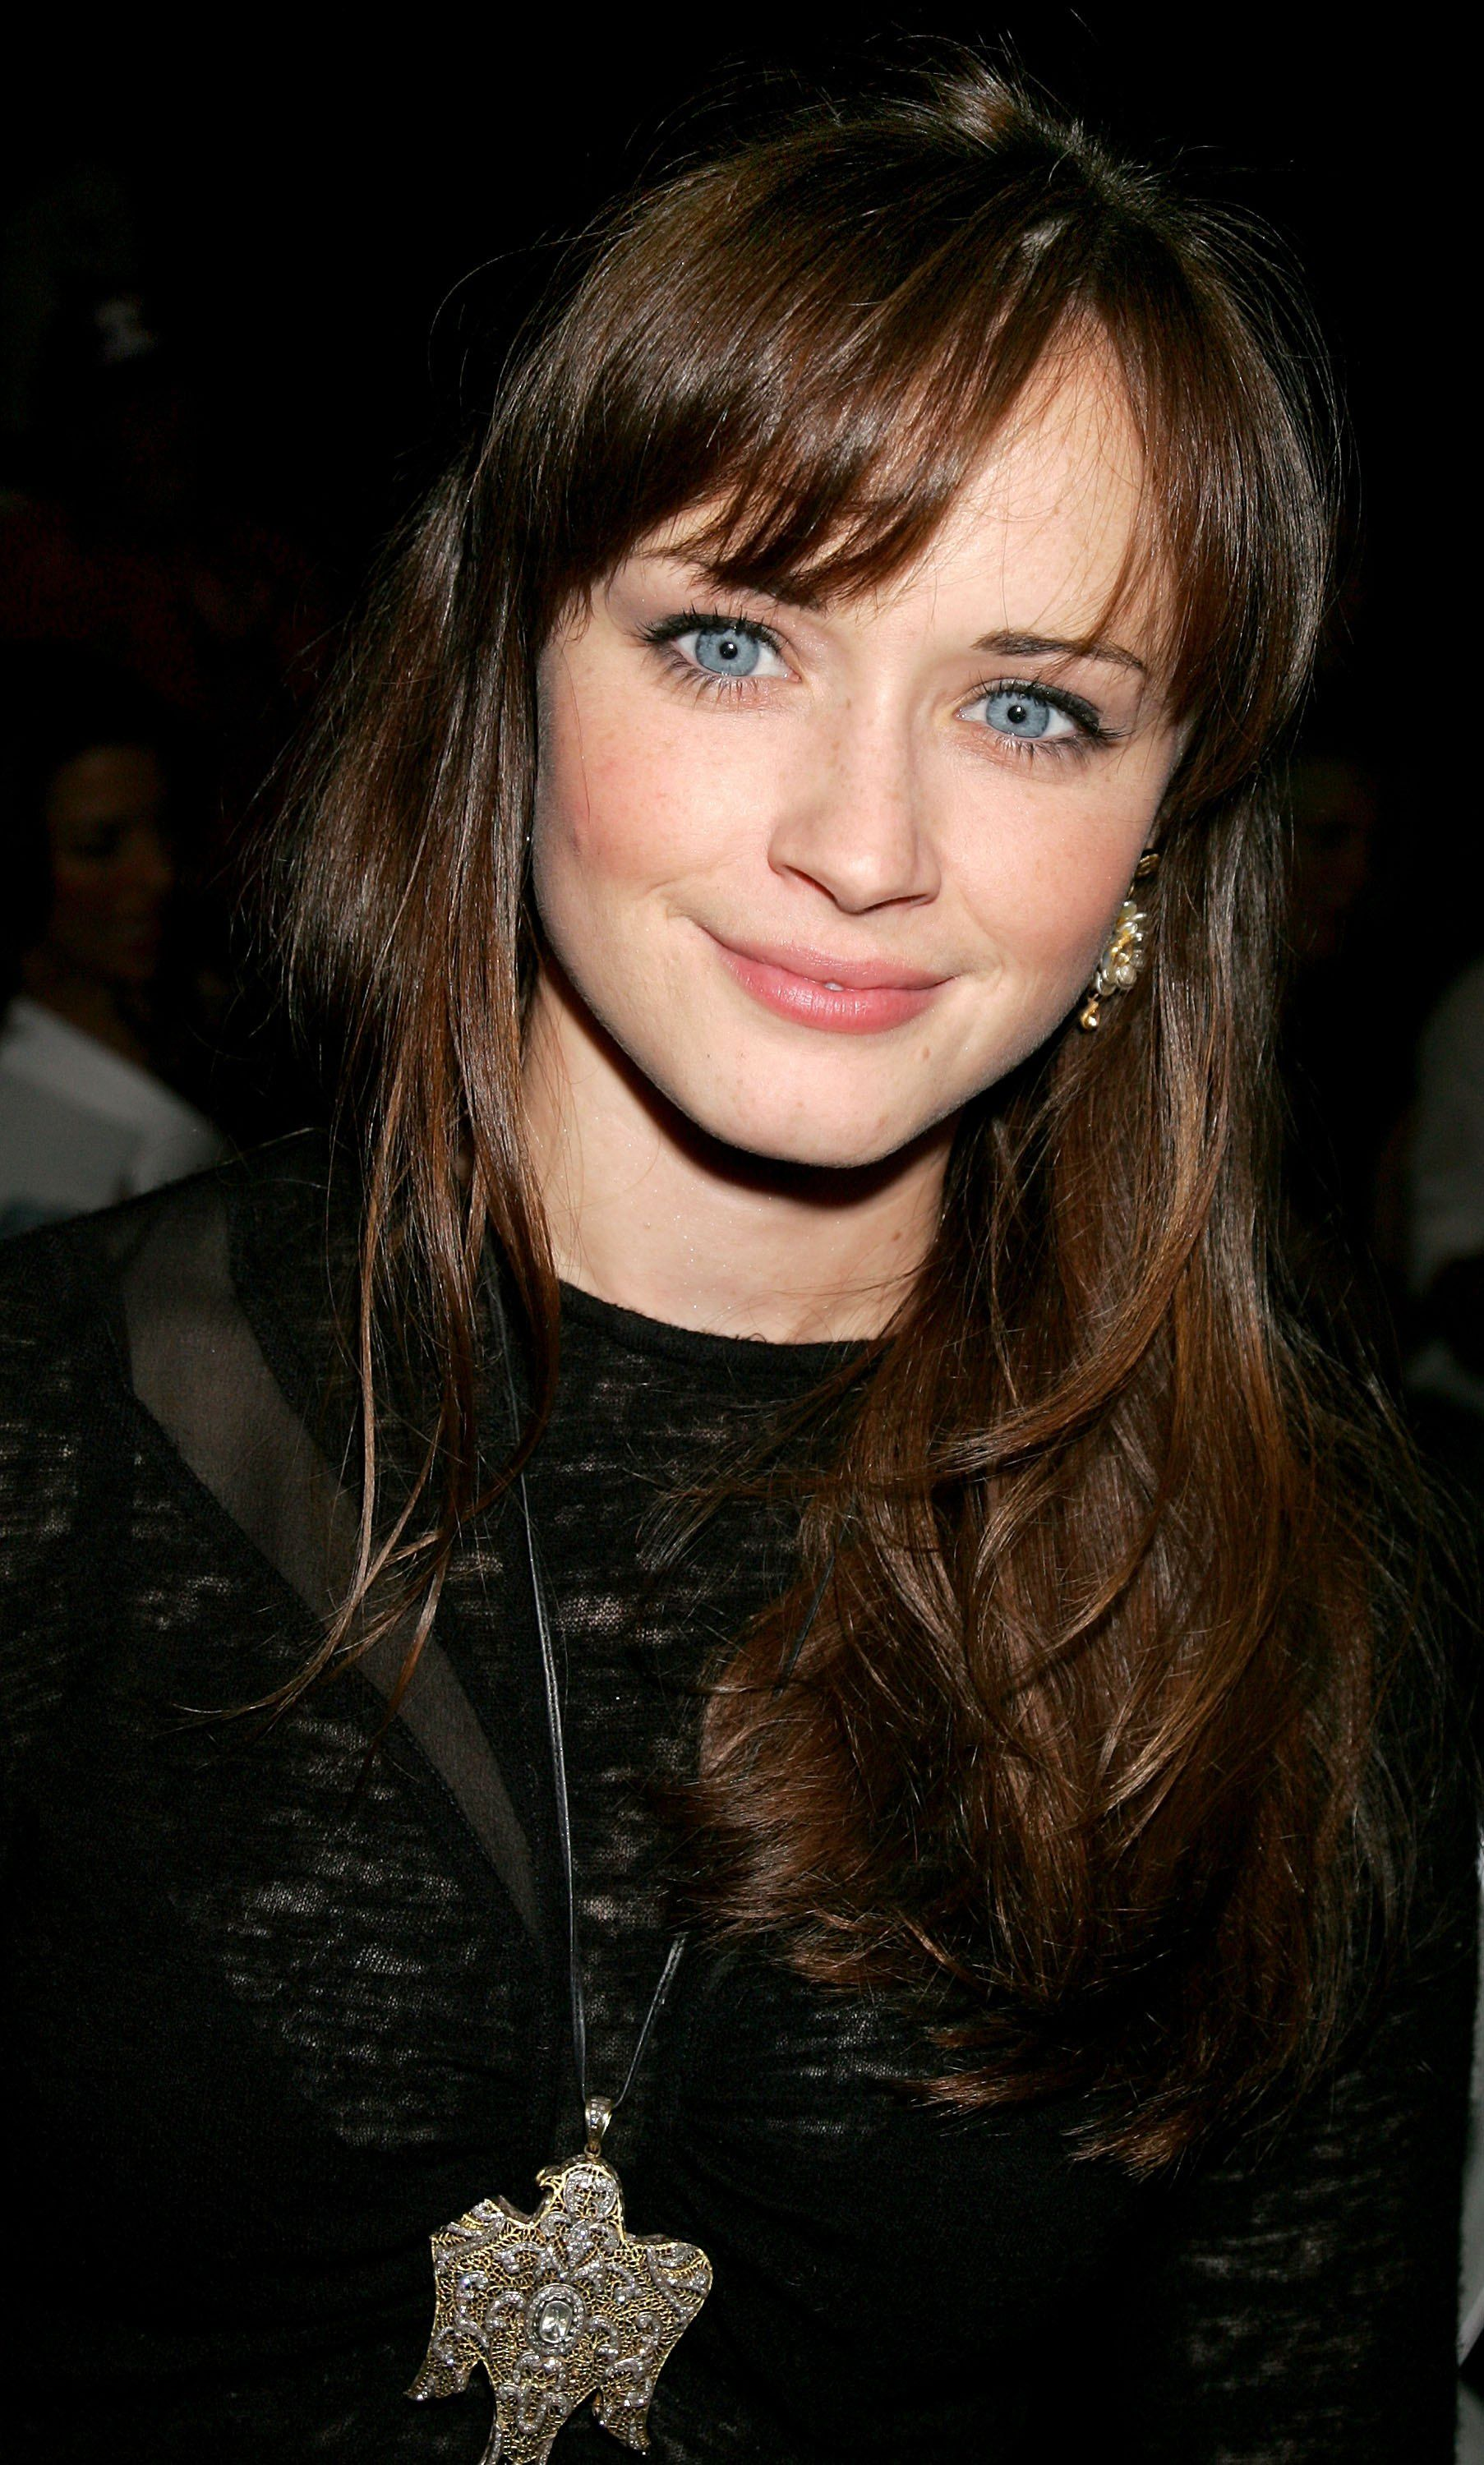 Double side haircut for boys bangs  alexis bledel  hair  pinterest  alexis bledel bangs and face